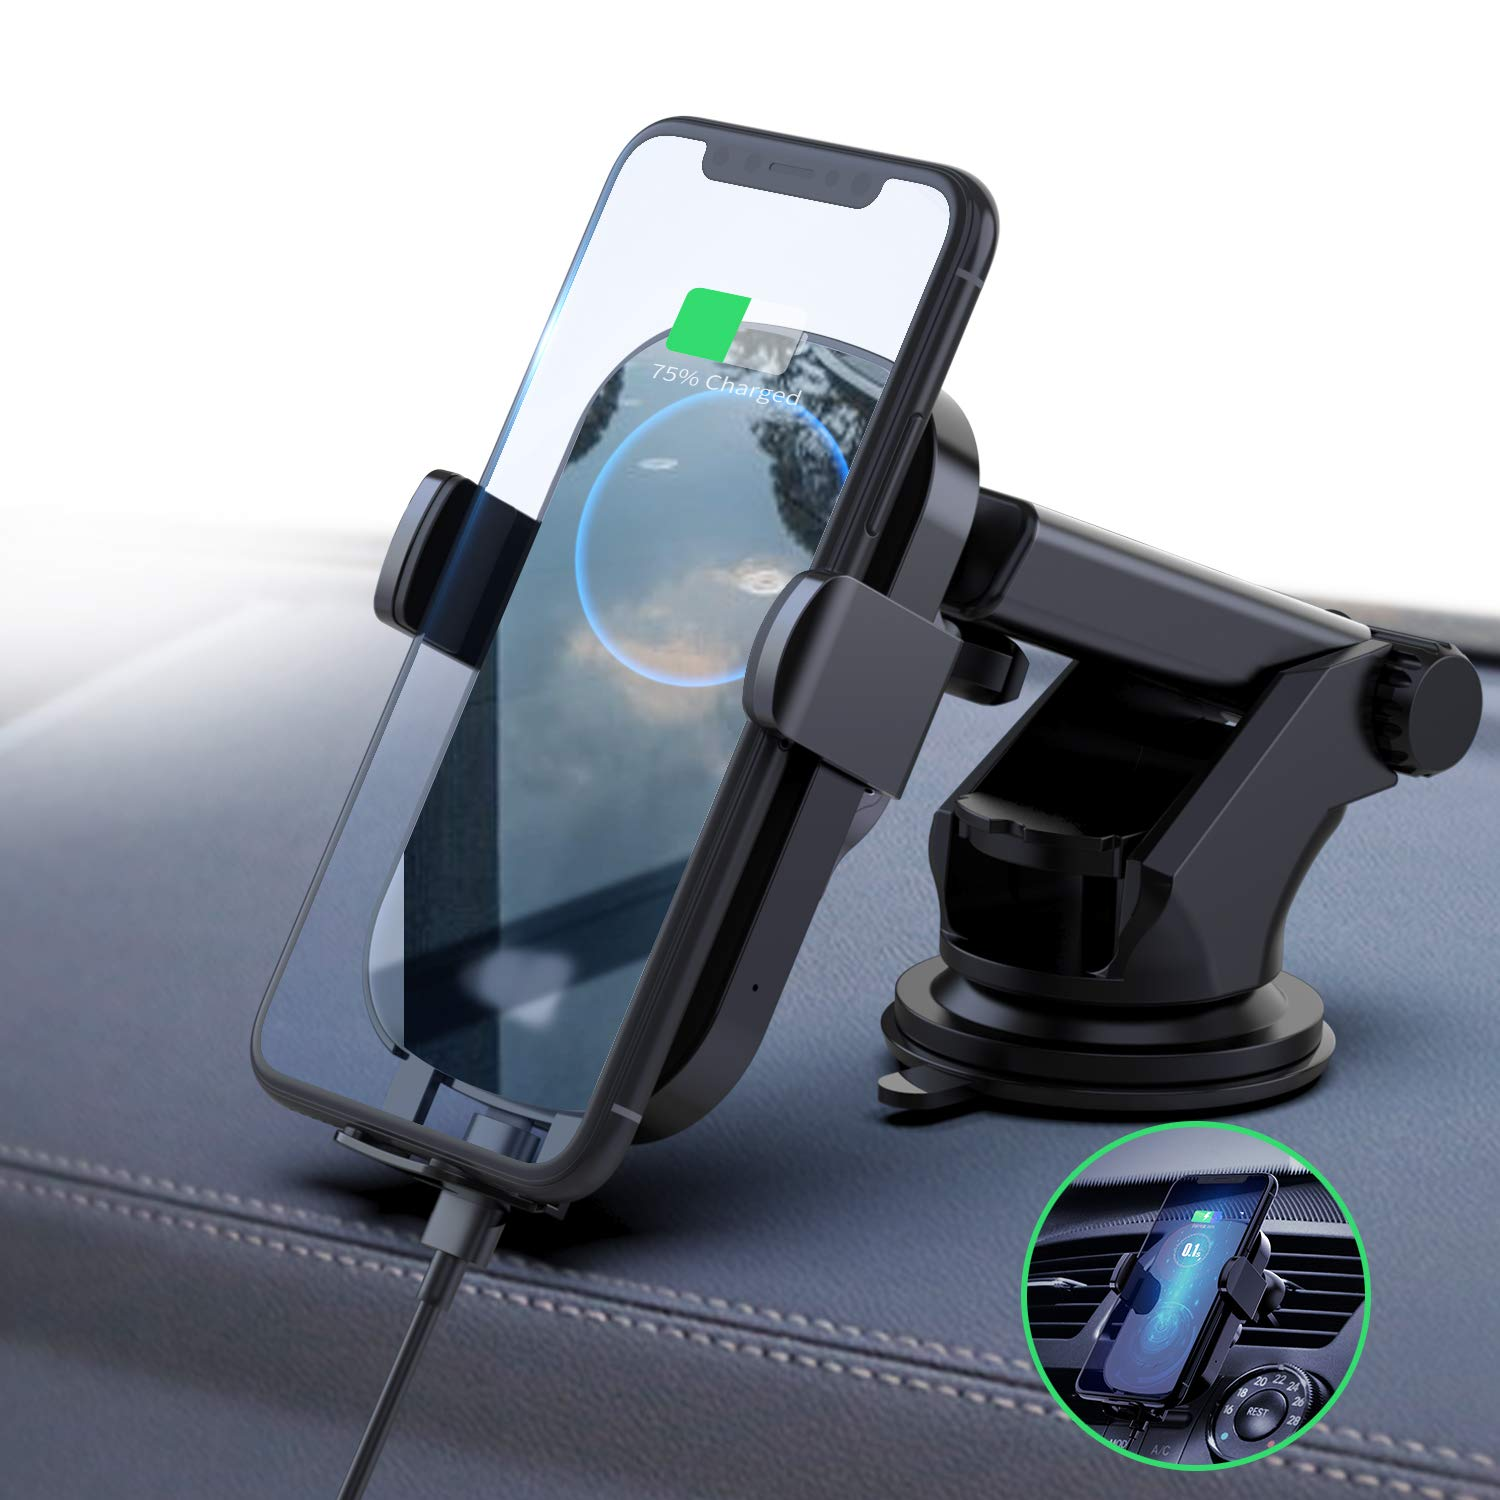 FireKylin Wireless Car Charger Mount, Auto-Clamping 10W 7.5W Qi Fast Charging Car Phone Holder Windshield Dashboard Air Vent Compatible with iPhone Xs Max XR X 8 Plus, Samsung S10 S10+ S9 S9+ S8 S8+